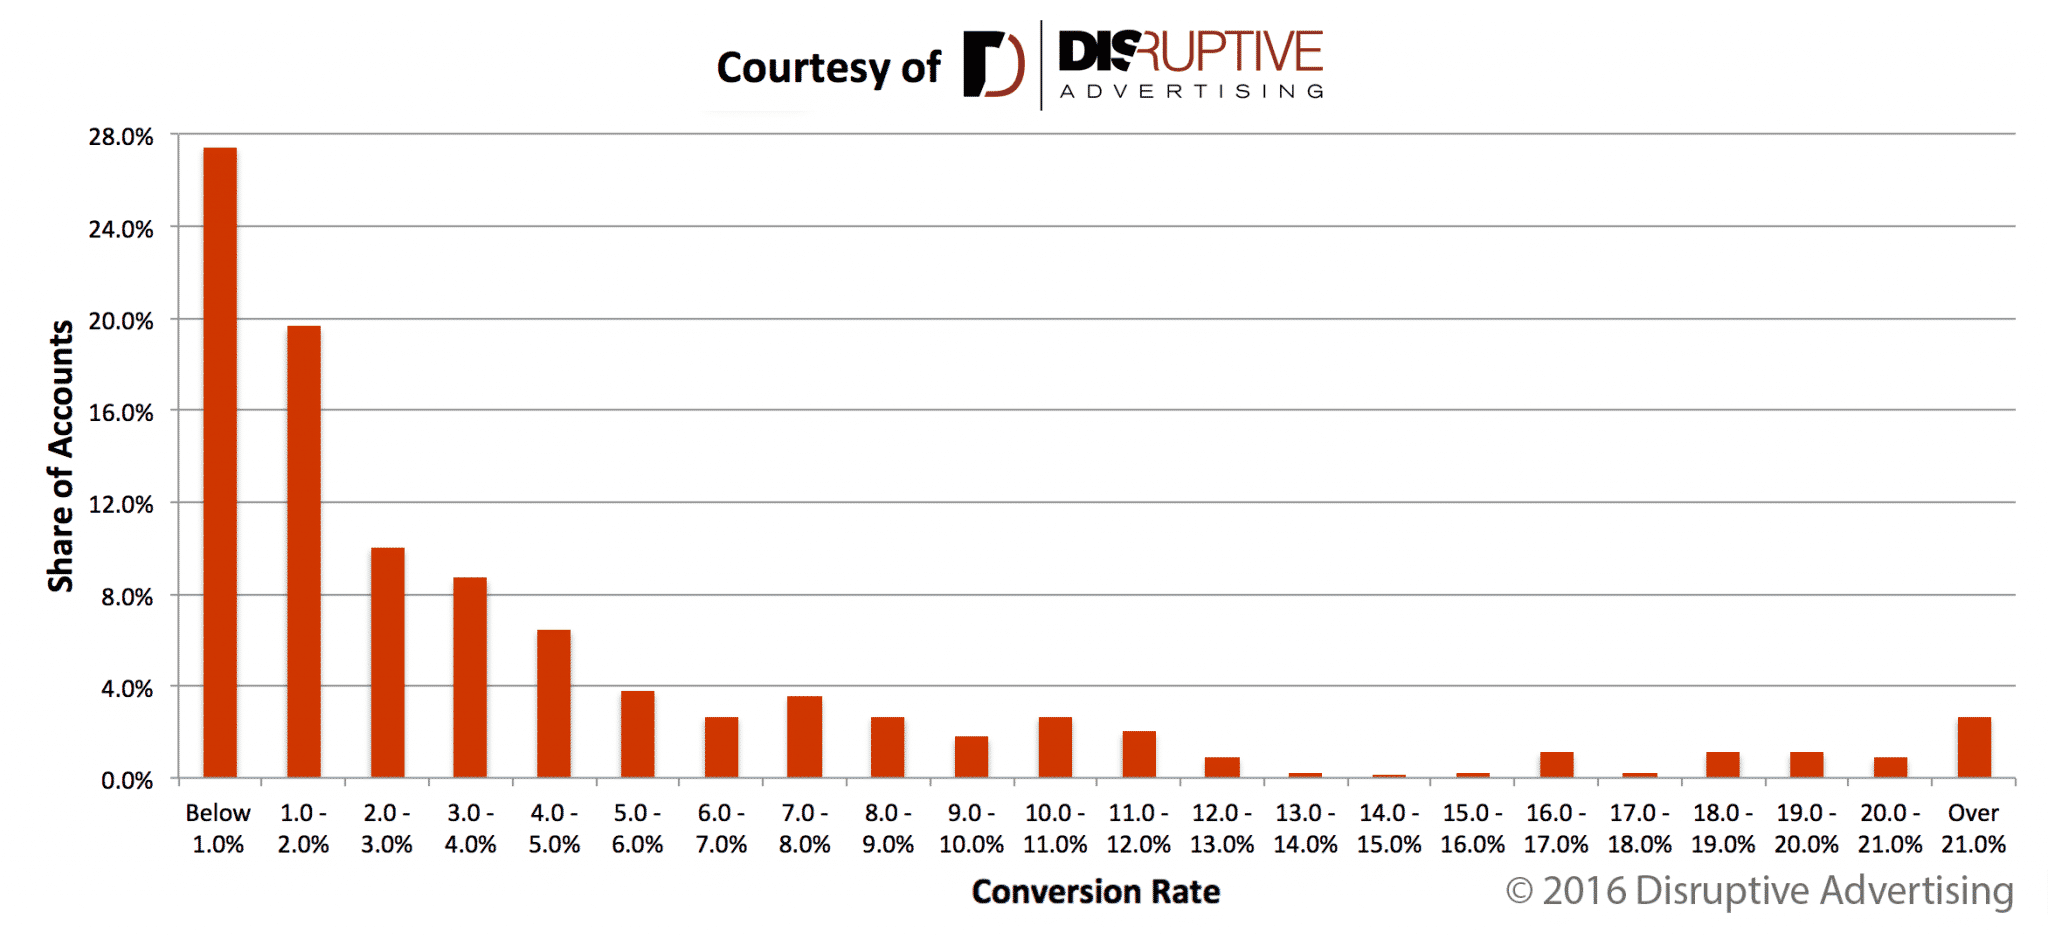 AdWords Conversion Rate Distribution | Disruptive Advertising